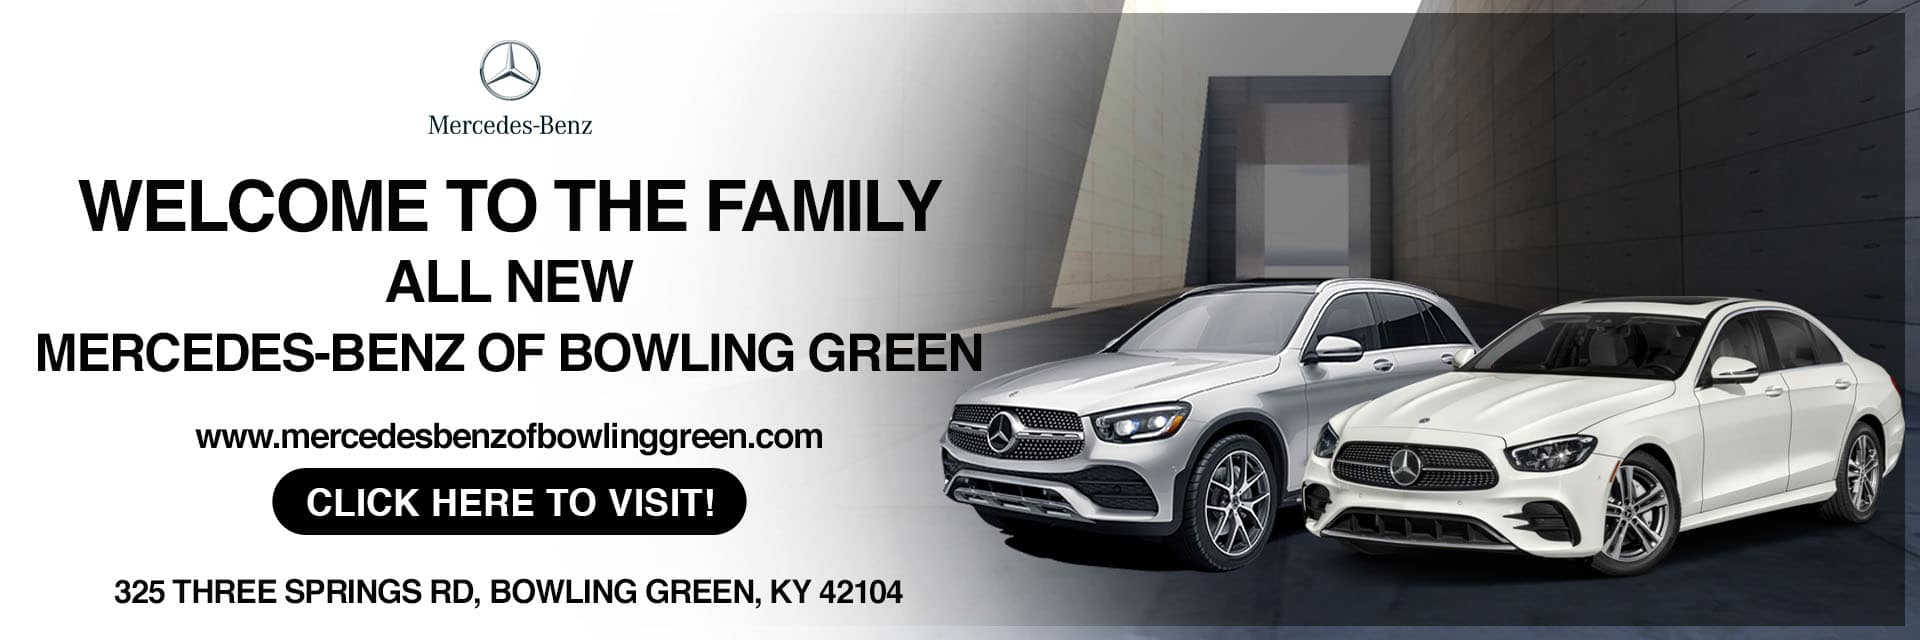 Now Open SliderMercedes-Benz of Bowling Green